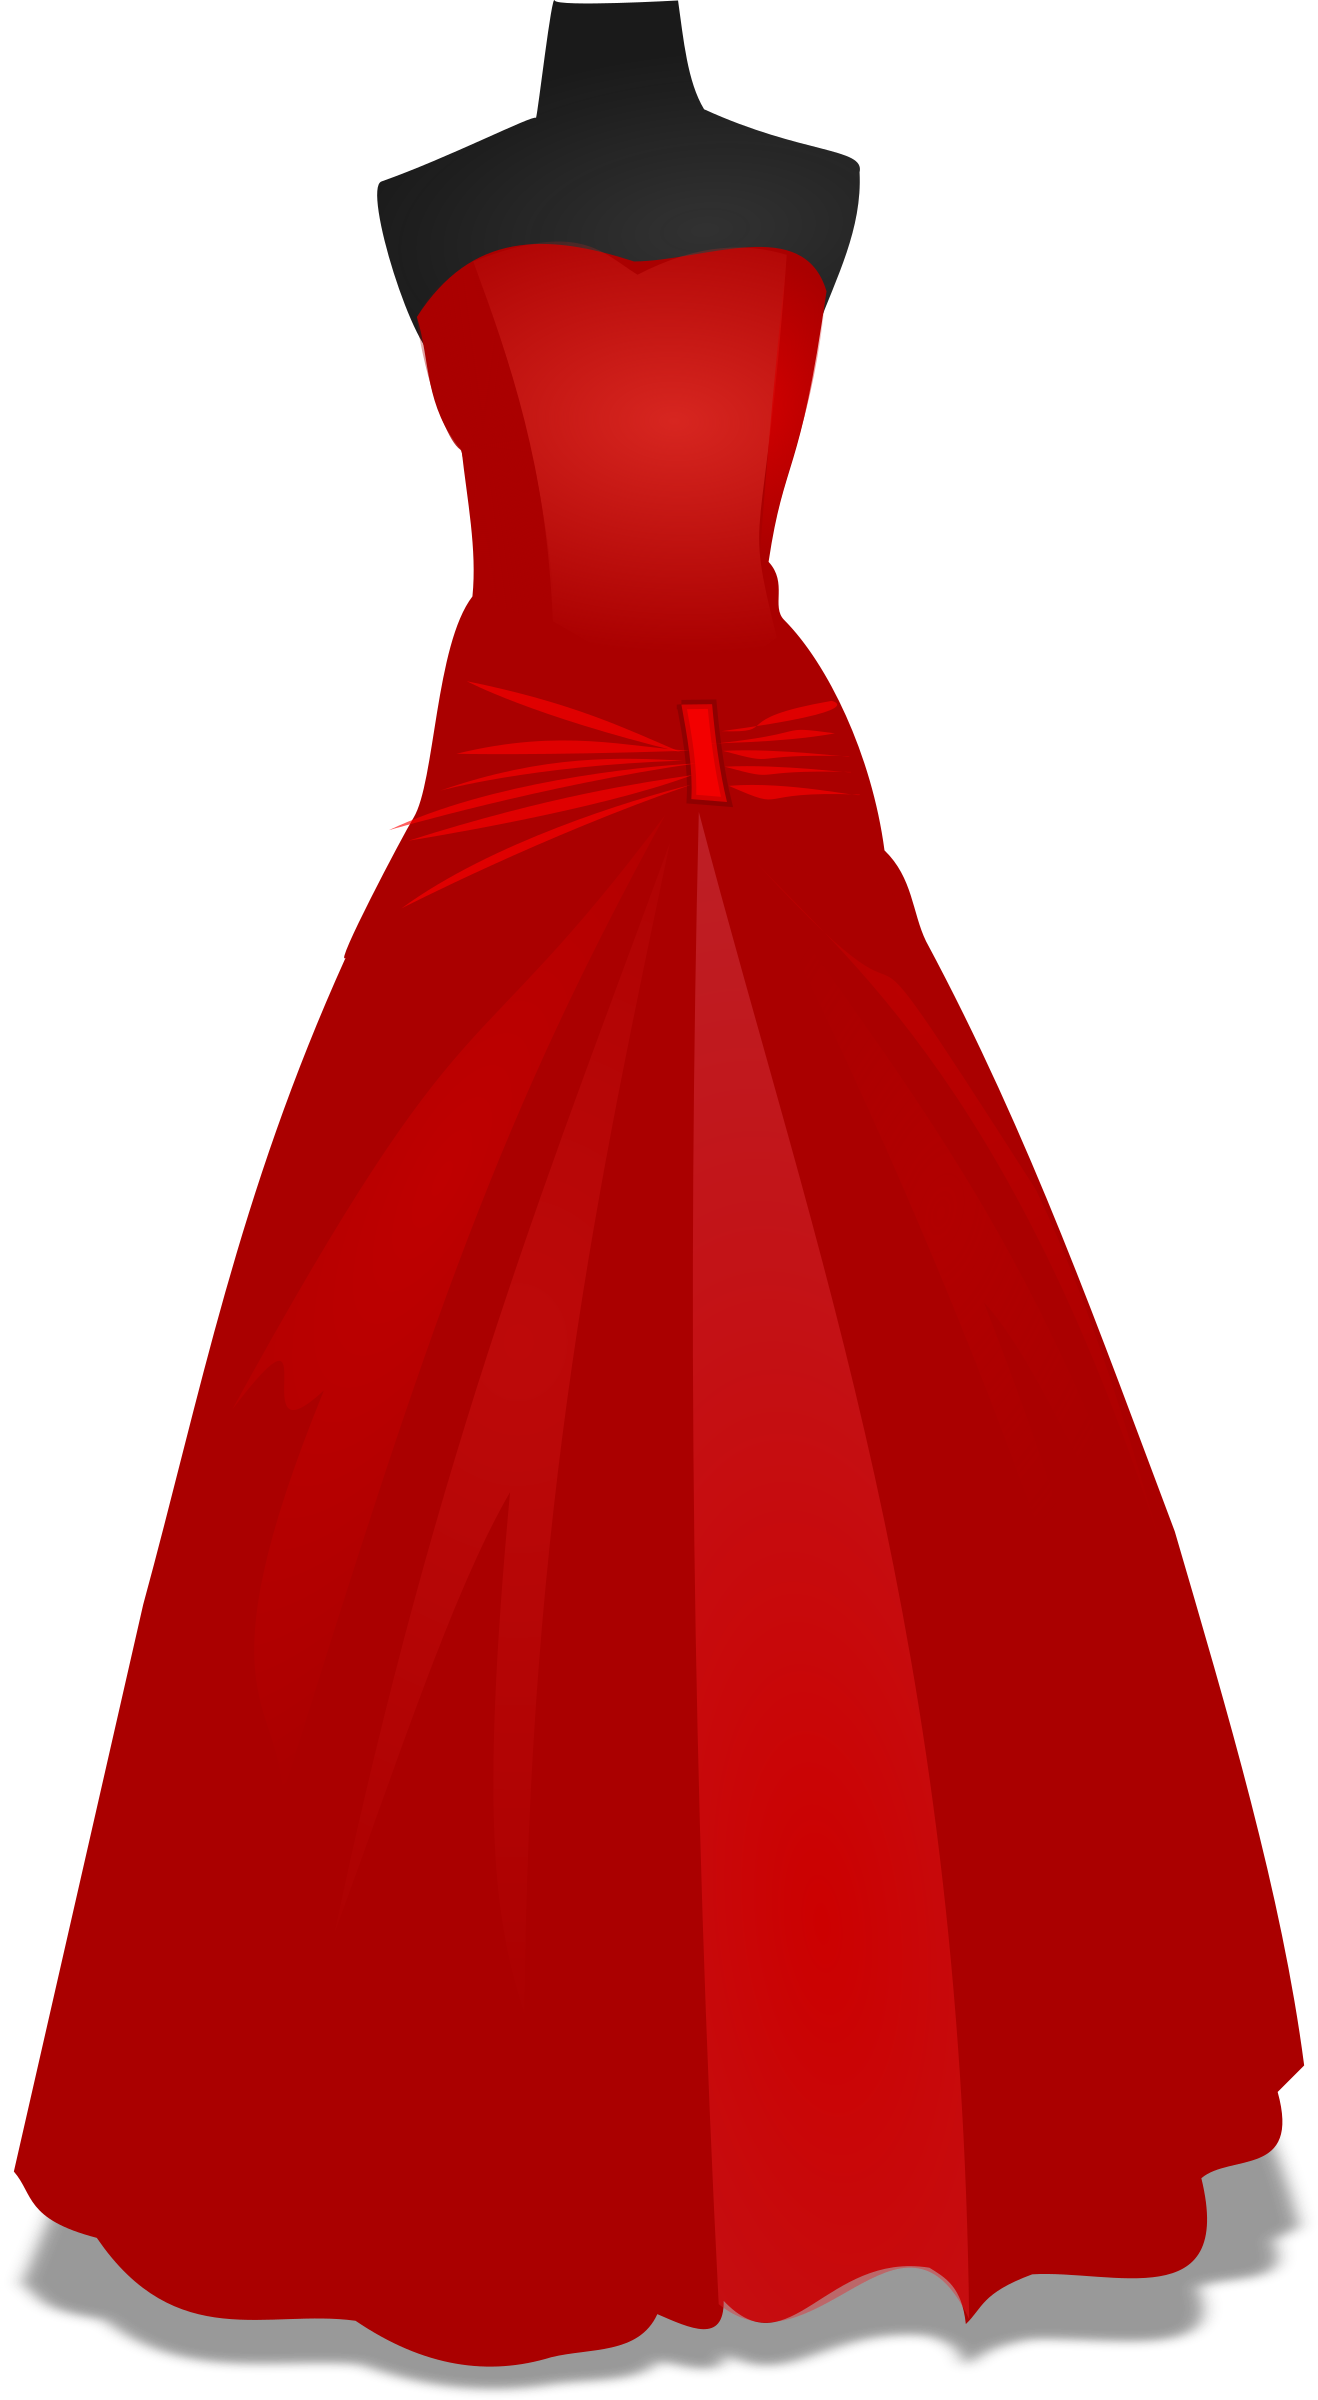 Dress clipart sleeveless dress. Gown